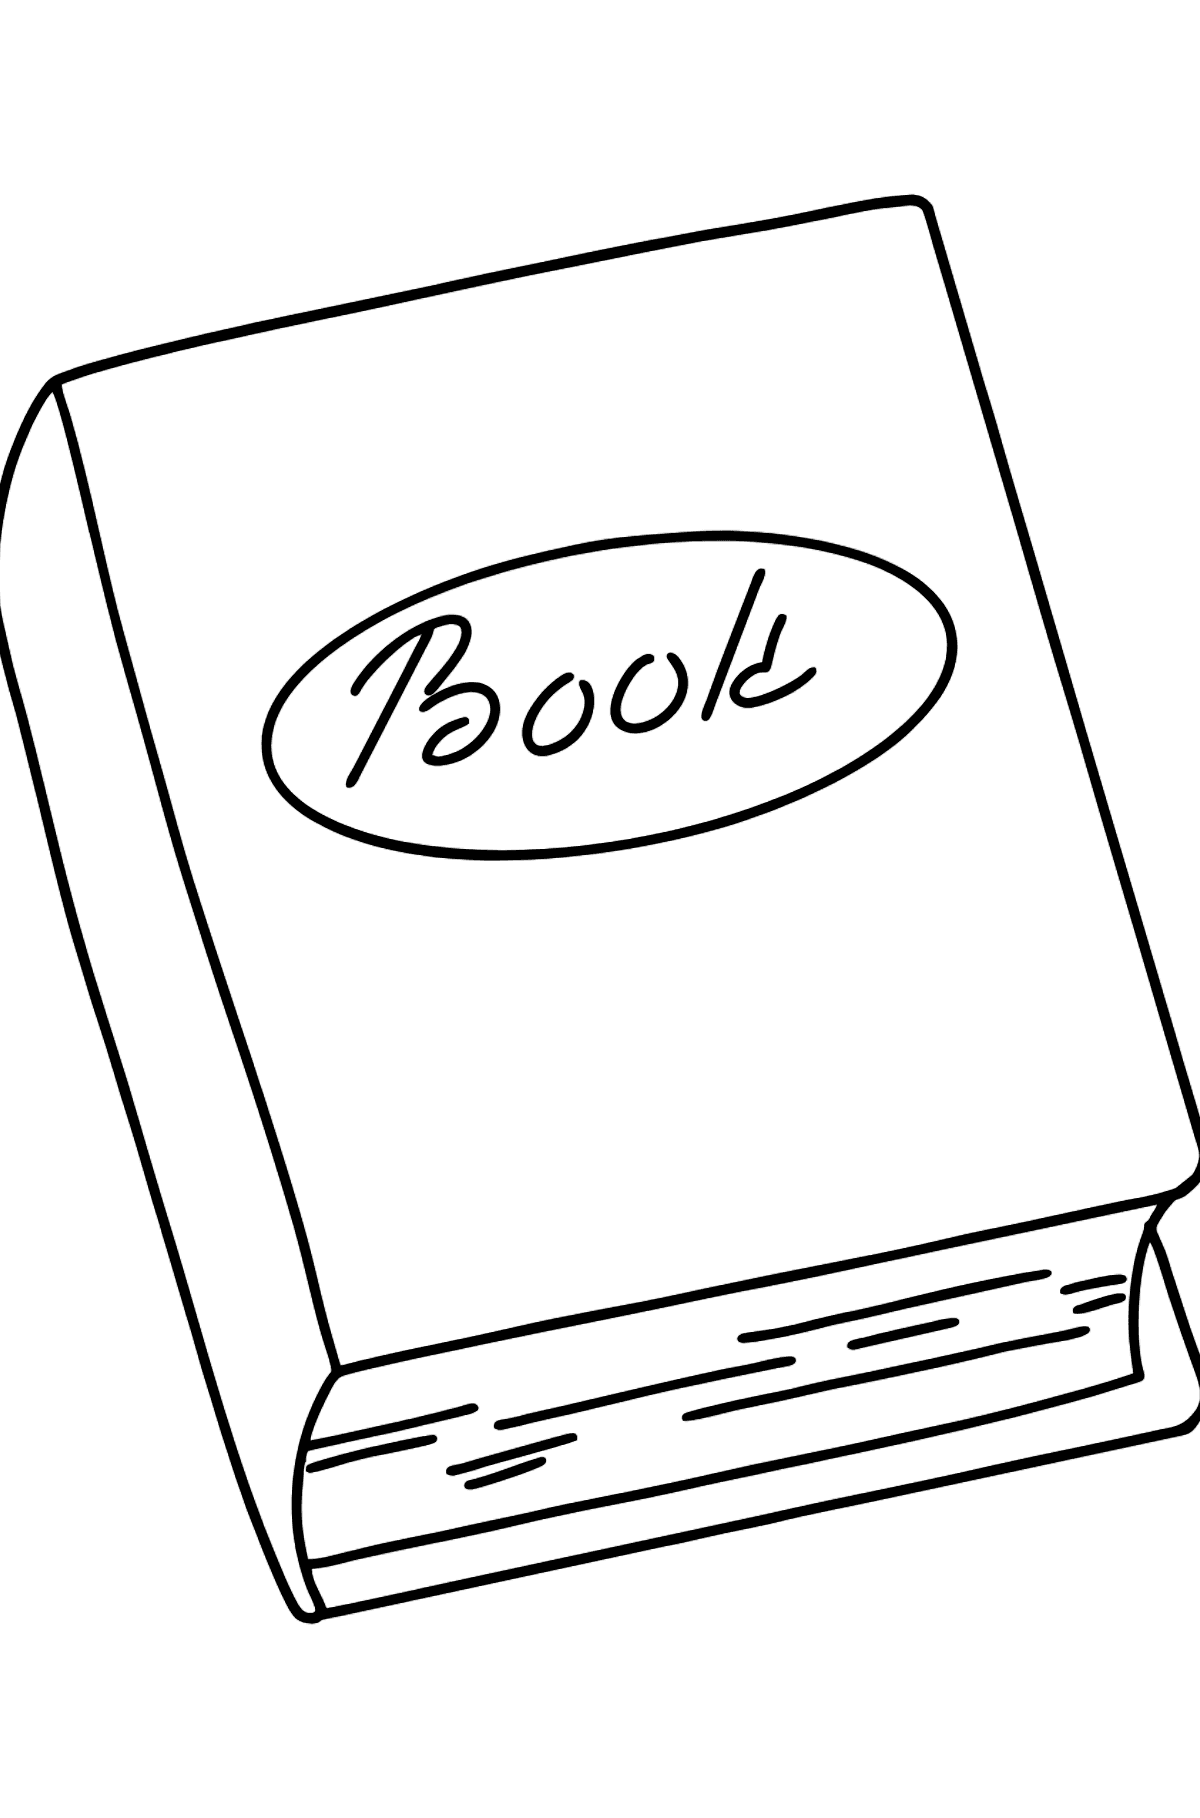 Book coloring page - Coloring Pages for Kids